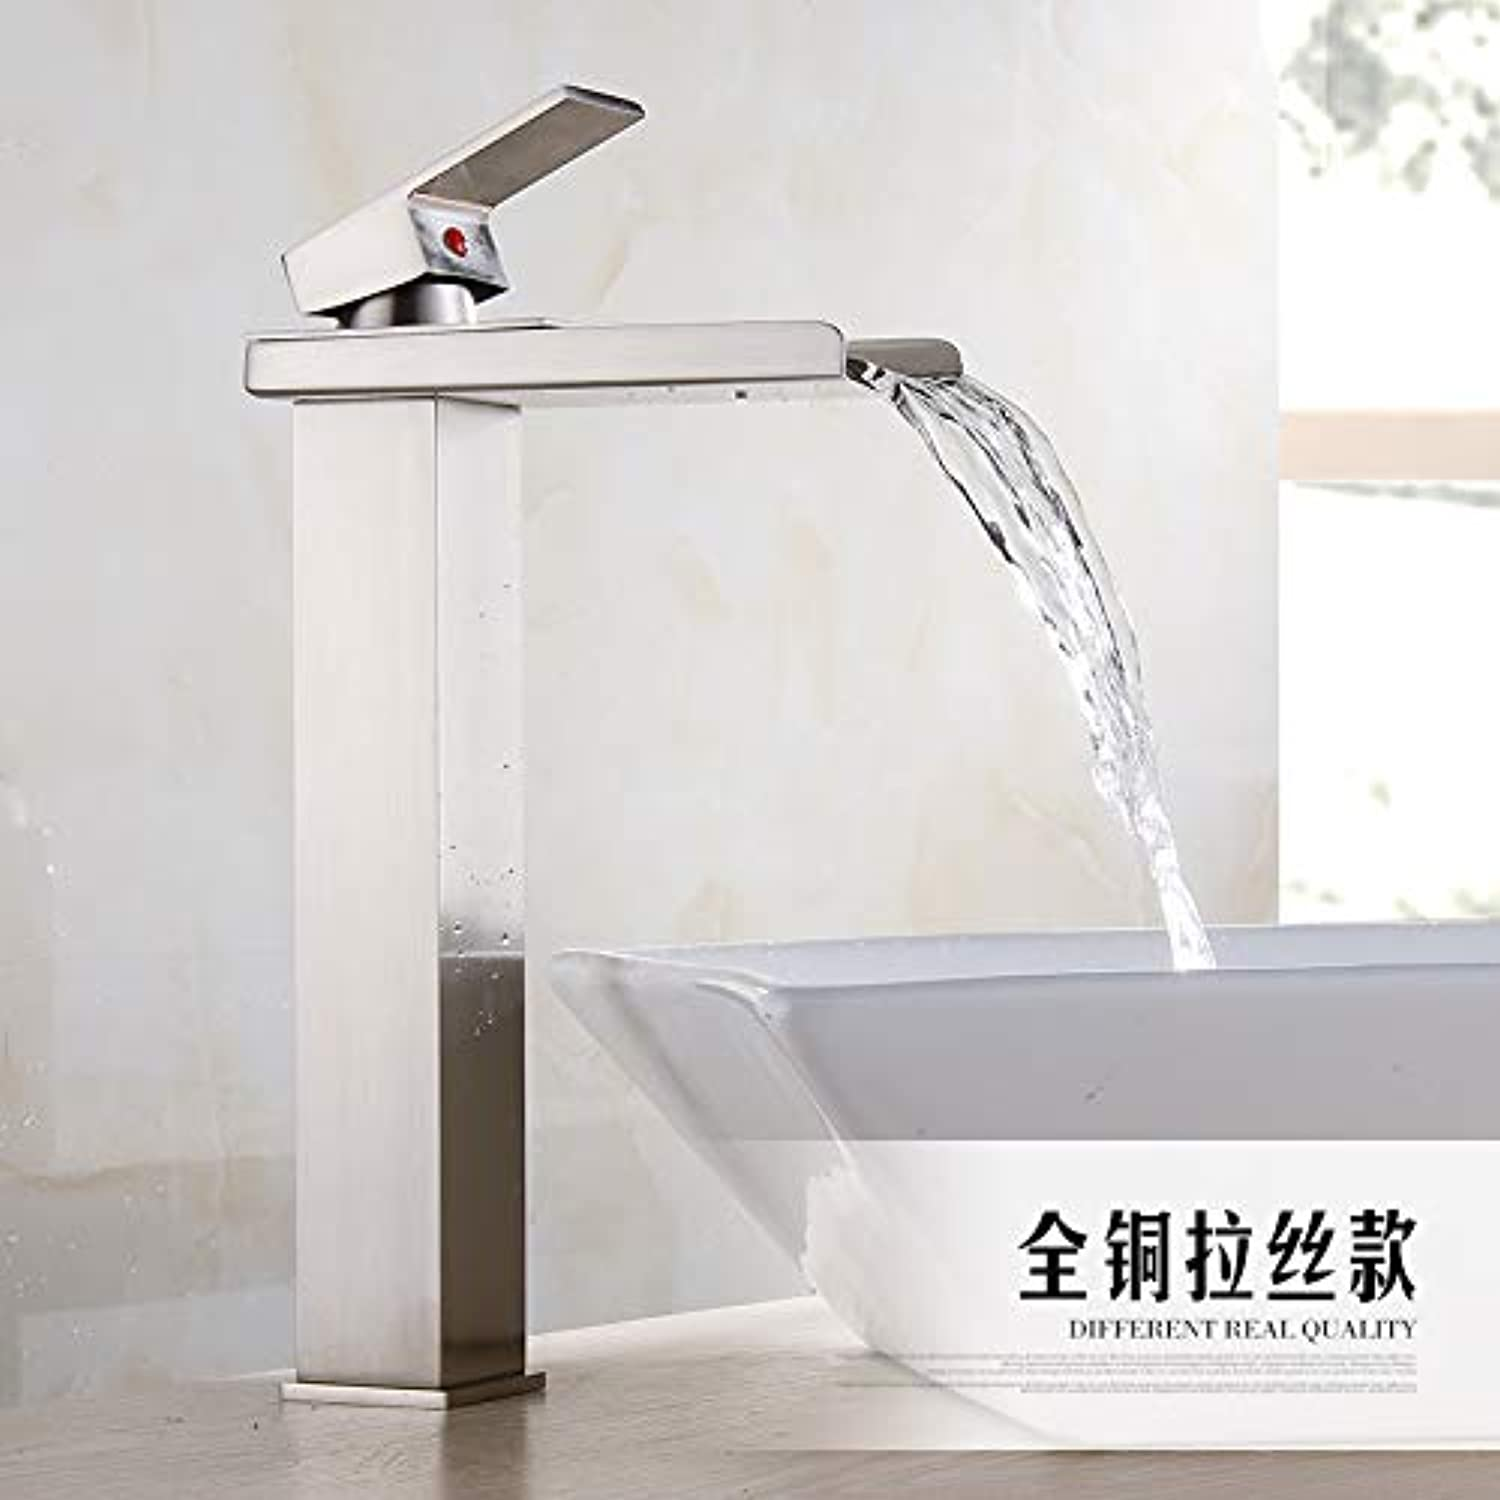 LHbox Basin Mixer Tap Bathroom Sink Faucet The copper surface basin faucet hot and cold water basin wash basin mixer bathroom faucet waterfall faucet with high,2016 brushed plus high)